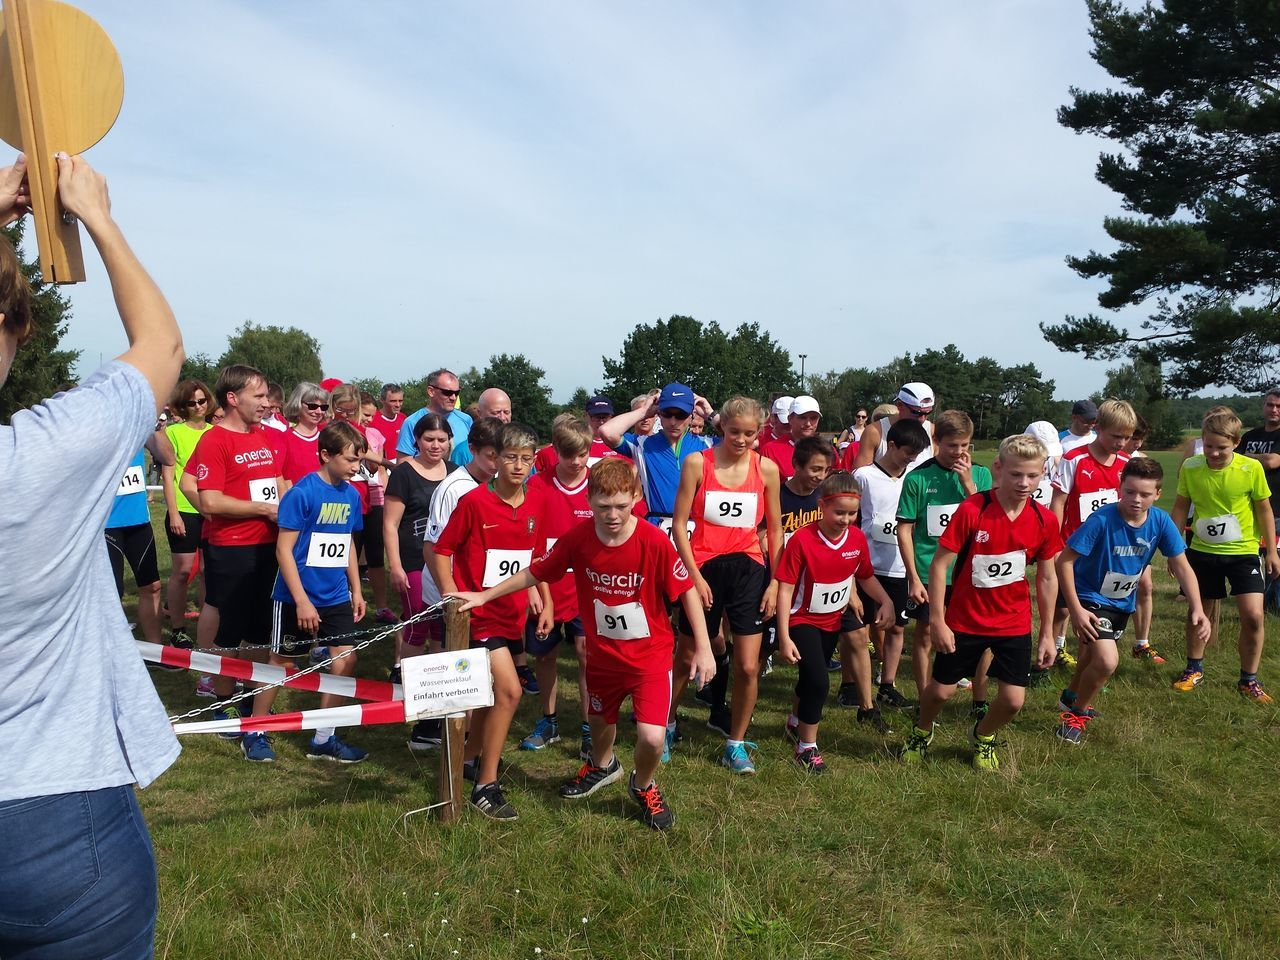 """wasserwerklauf elze 2016 - Start des 5km- Laufs./ """"waterworks run 2016 """", Elze, sponsored by enercity. Large Group Of People Person Togetherness Crowd Outdoors Day Performance Vibrant Color Runnersworld Front View Non-urban Scene Competitors Leisure Activity The Color Of Sport Sports Spectator Celebration Event Person Sportive Sport Casual Clothing Dynamic Ladyphotographerofthemonth Competitive Sport Conformity"""